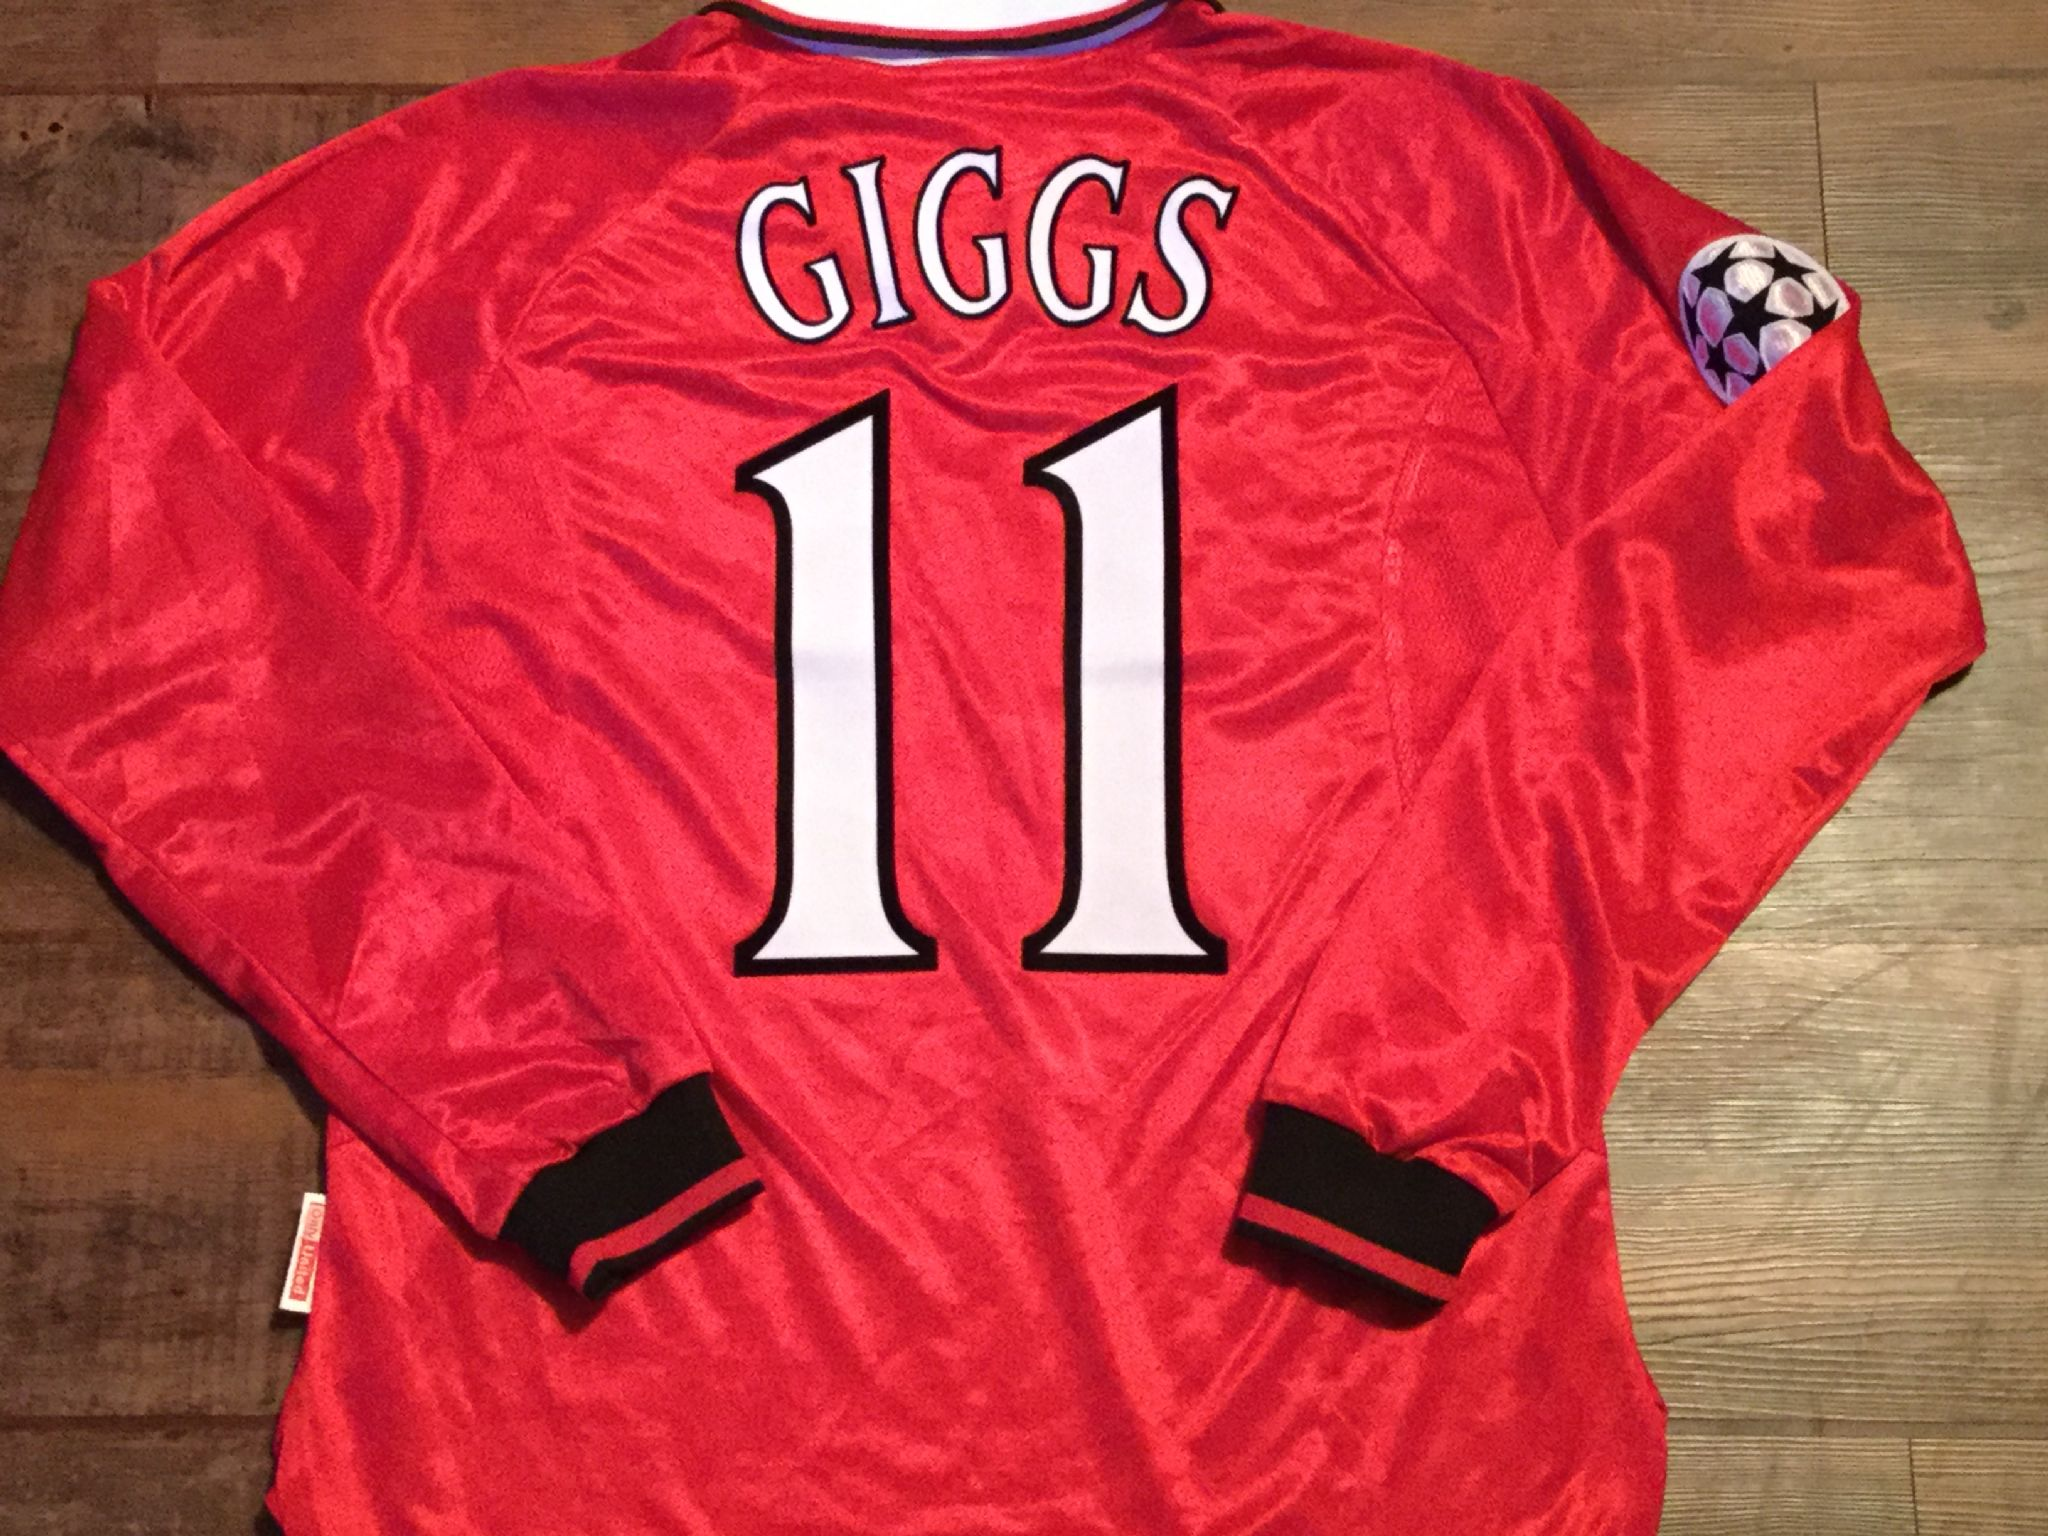 3ac647f9 1999 Manchester United Giggs CL Medium Long Sleeved L/s Classic Football  Shirt Vintage Soccer Jersey